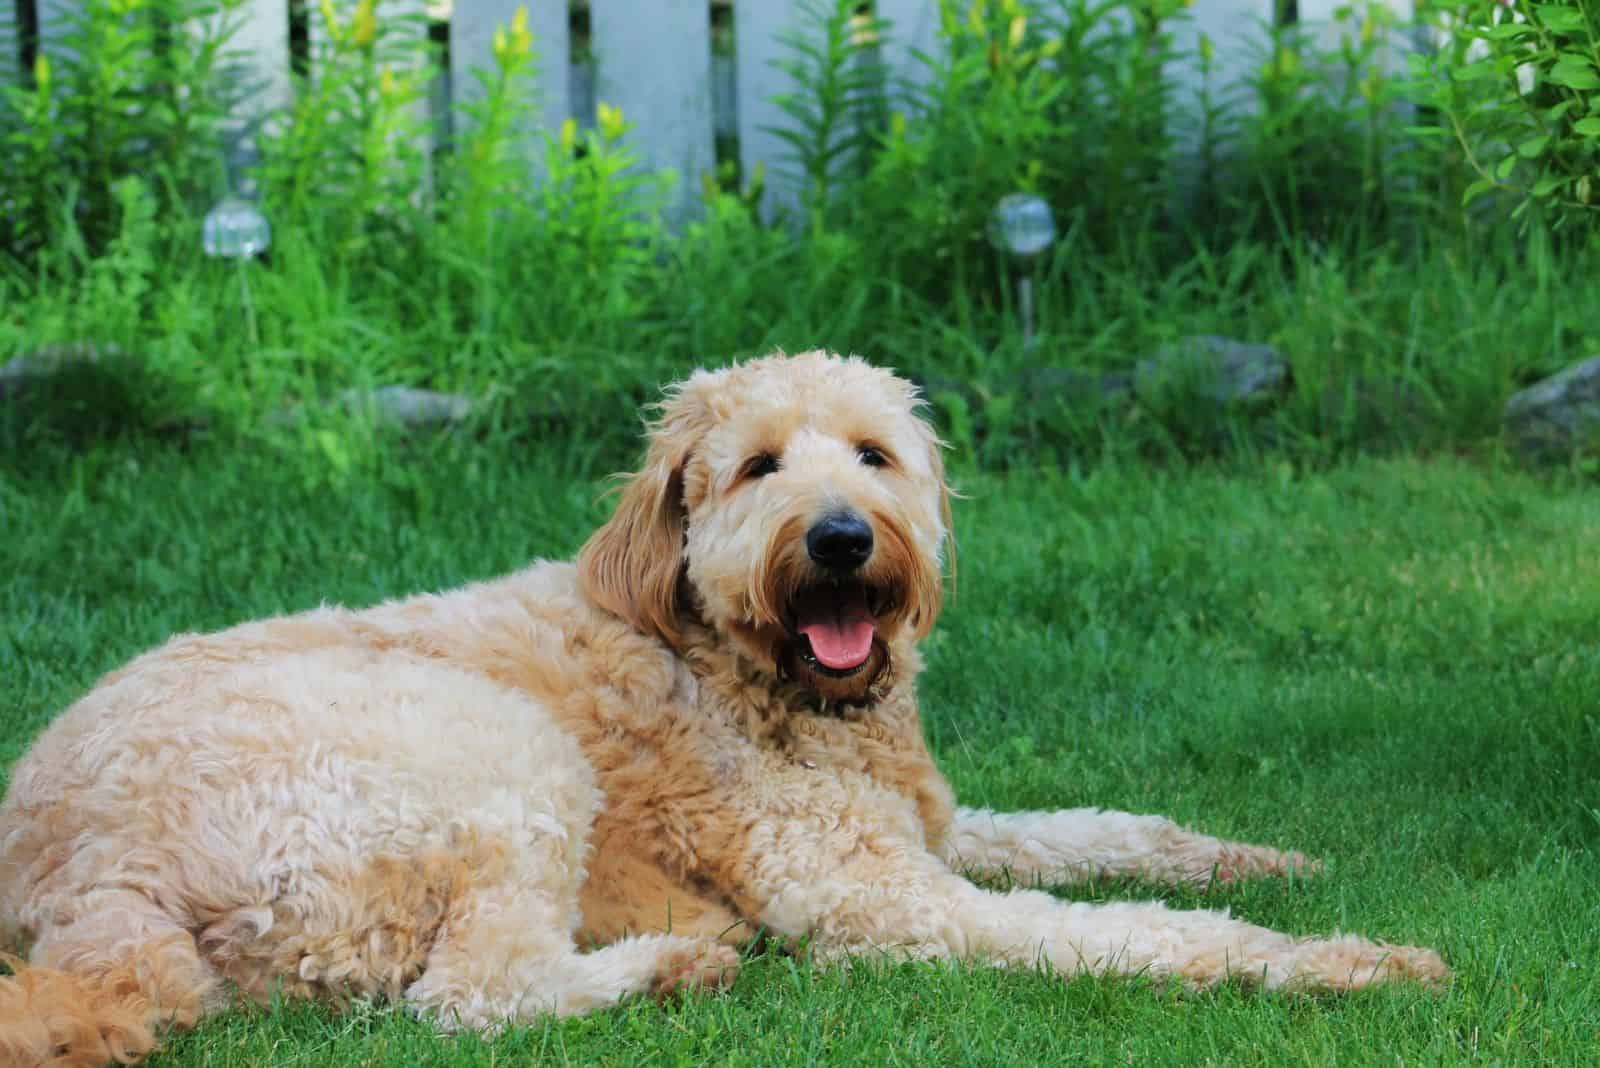 goldendoodle dog outdoors sitting and relaxing looking at the camera